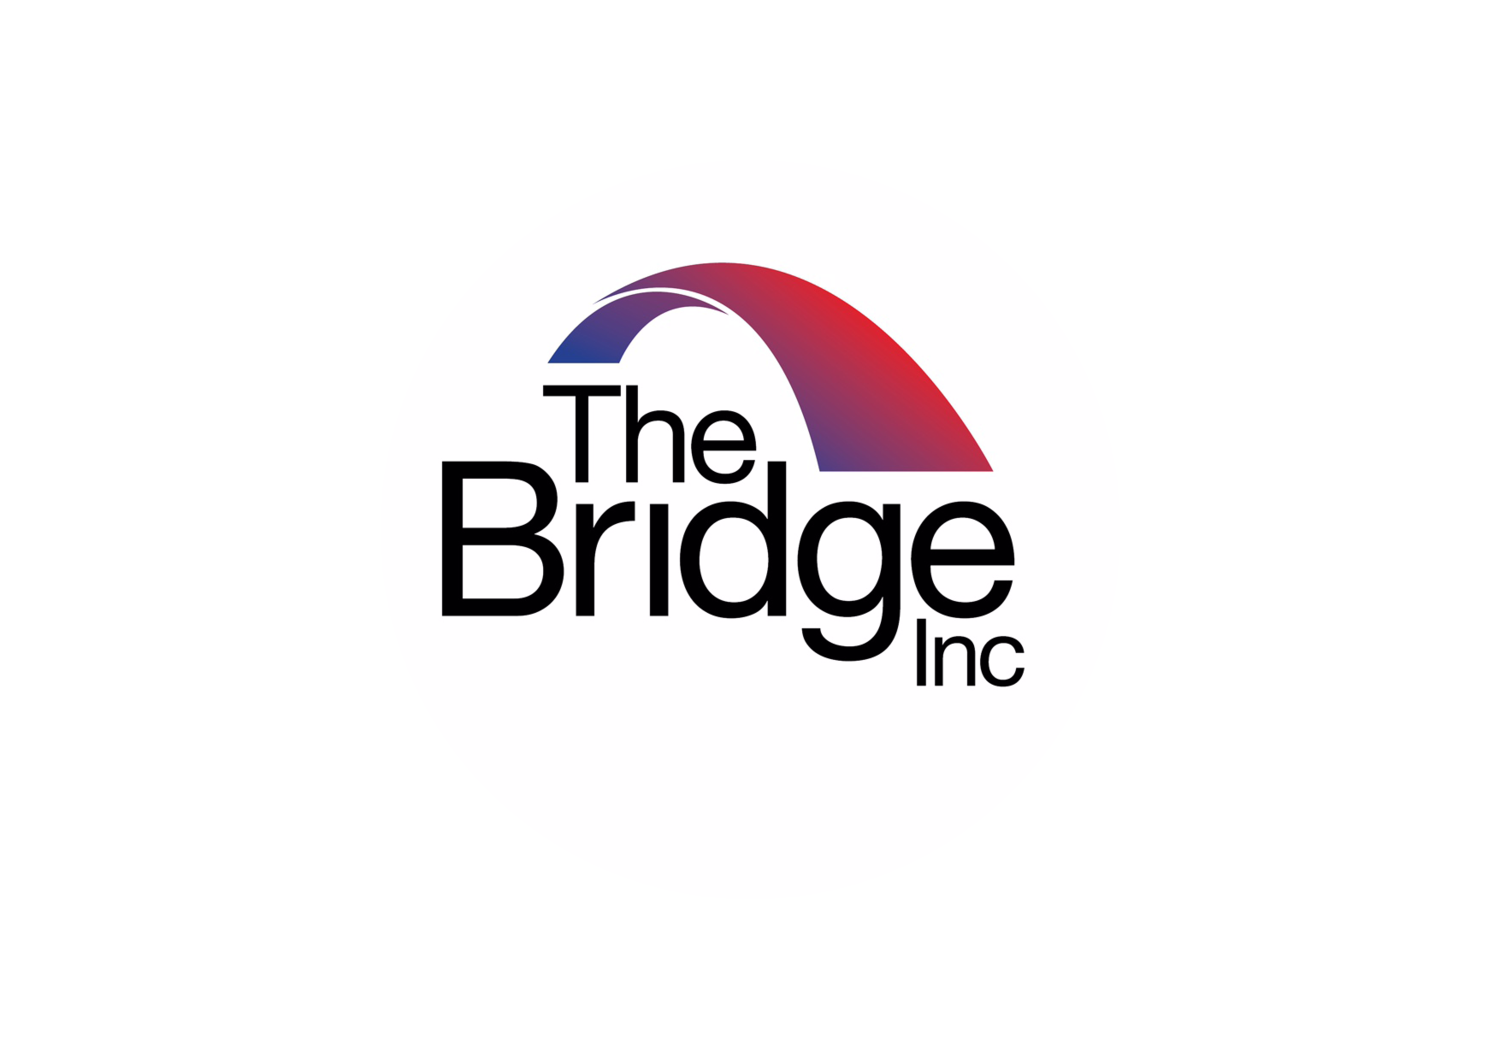 The Bridge Inc.